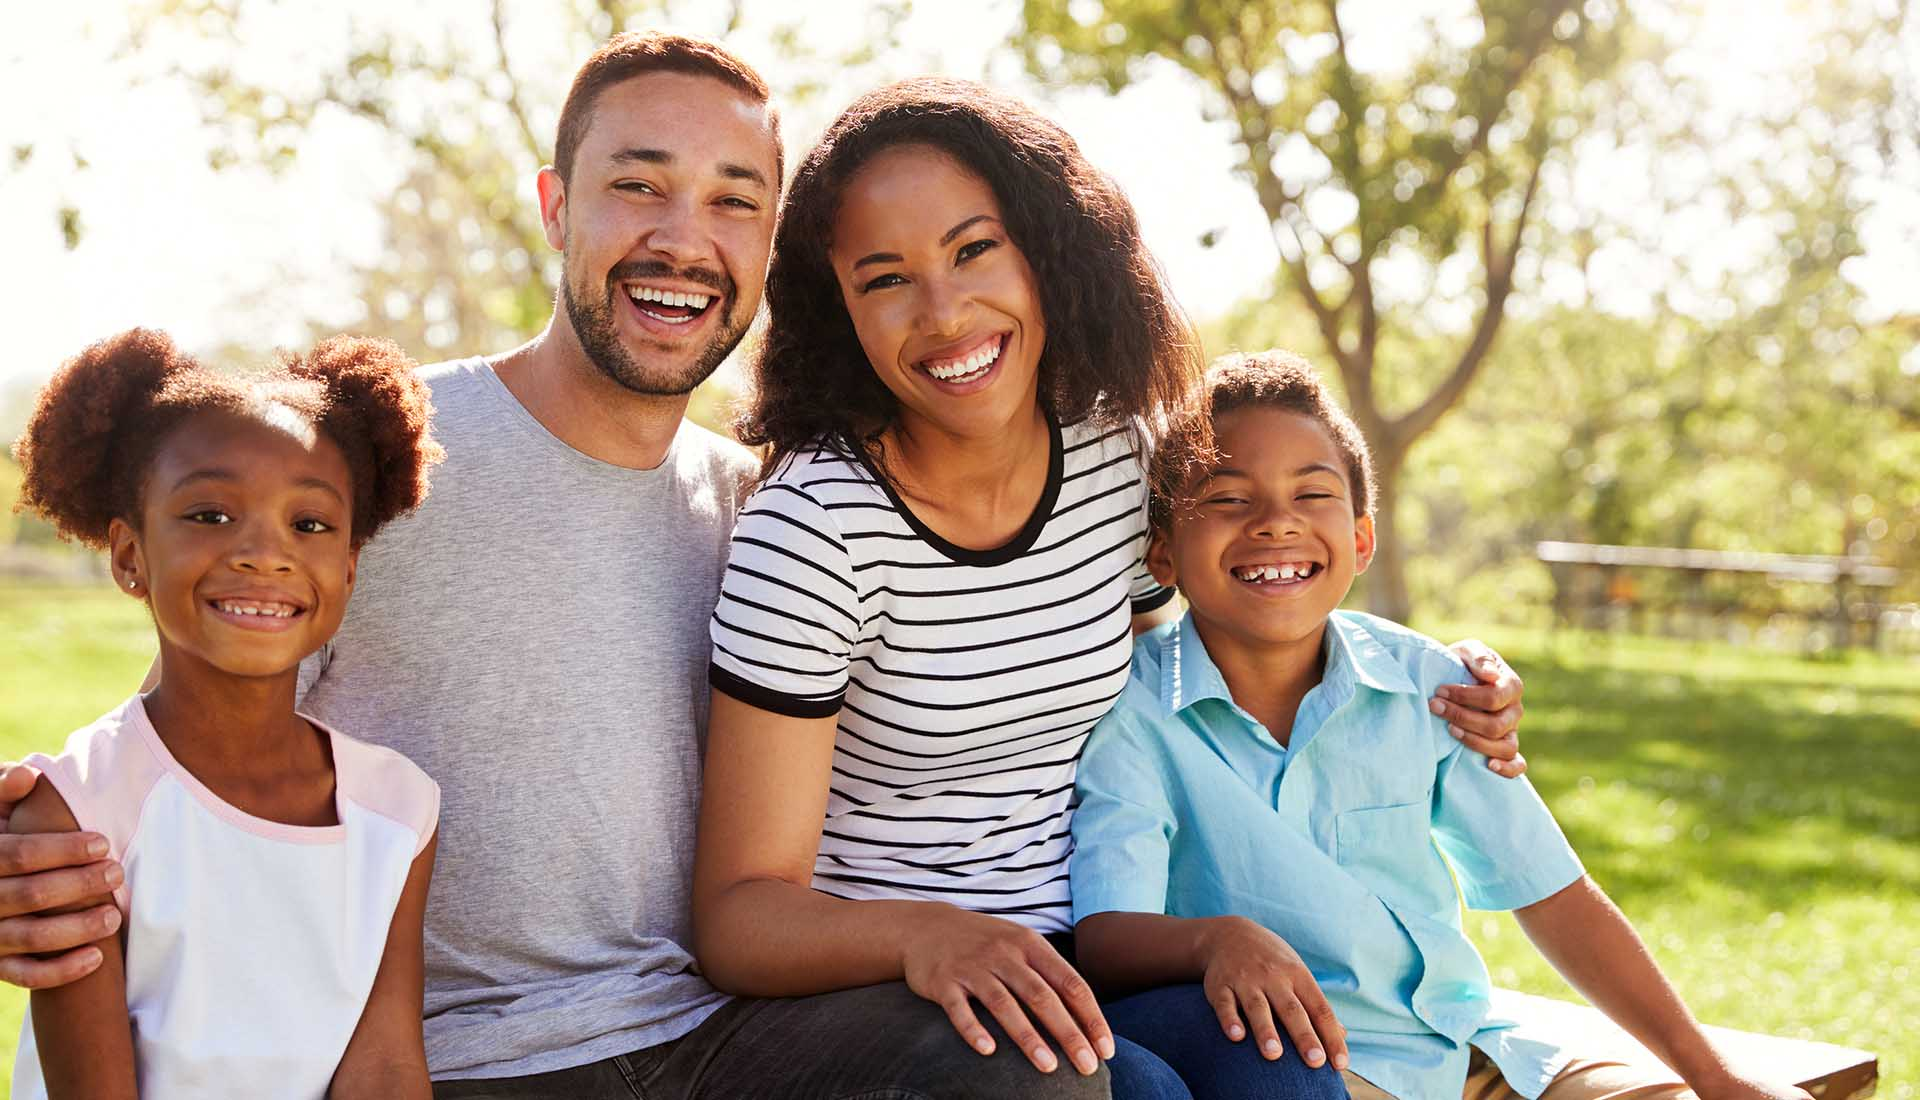 happy Afro-American family of four spending time outdoors